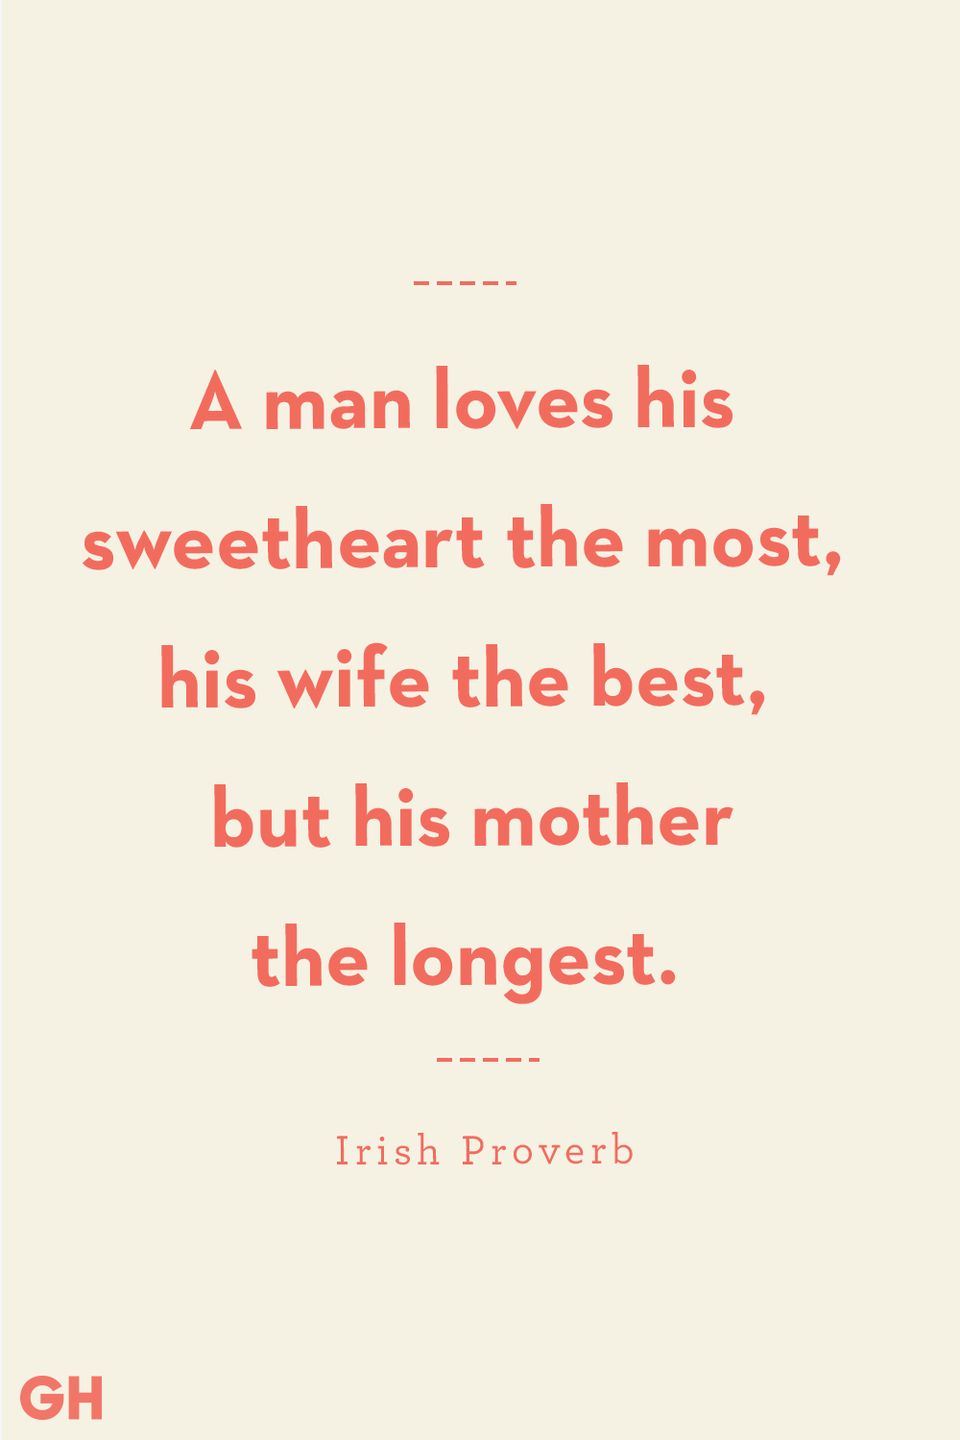 <p>A man loves his sweetheart the most, his wife the best, but his mother the longest.</p>